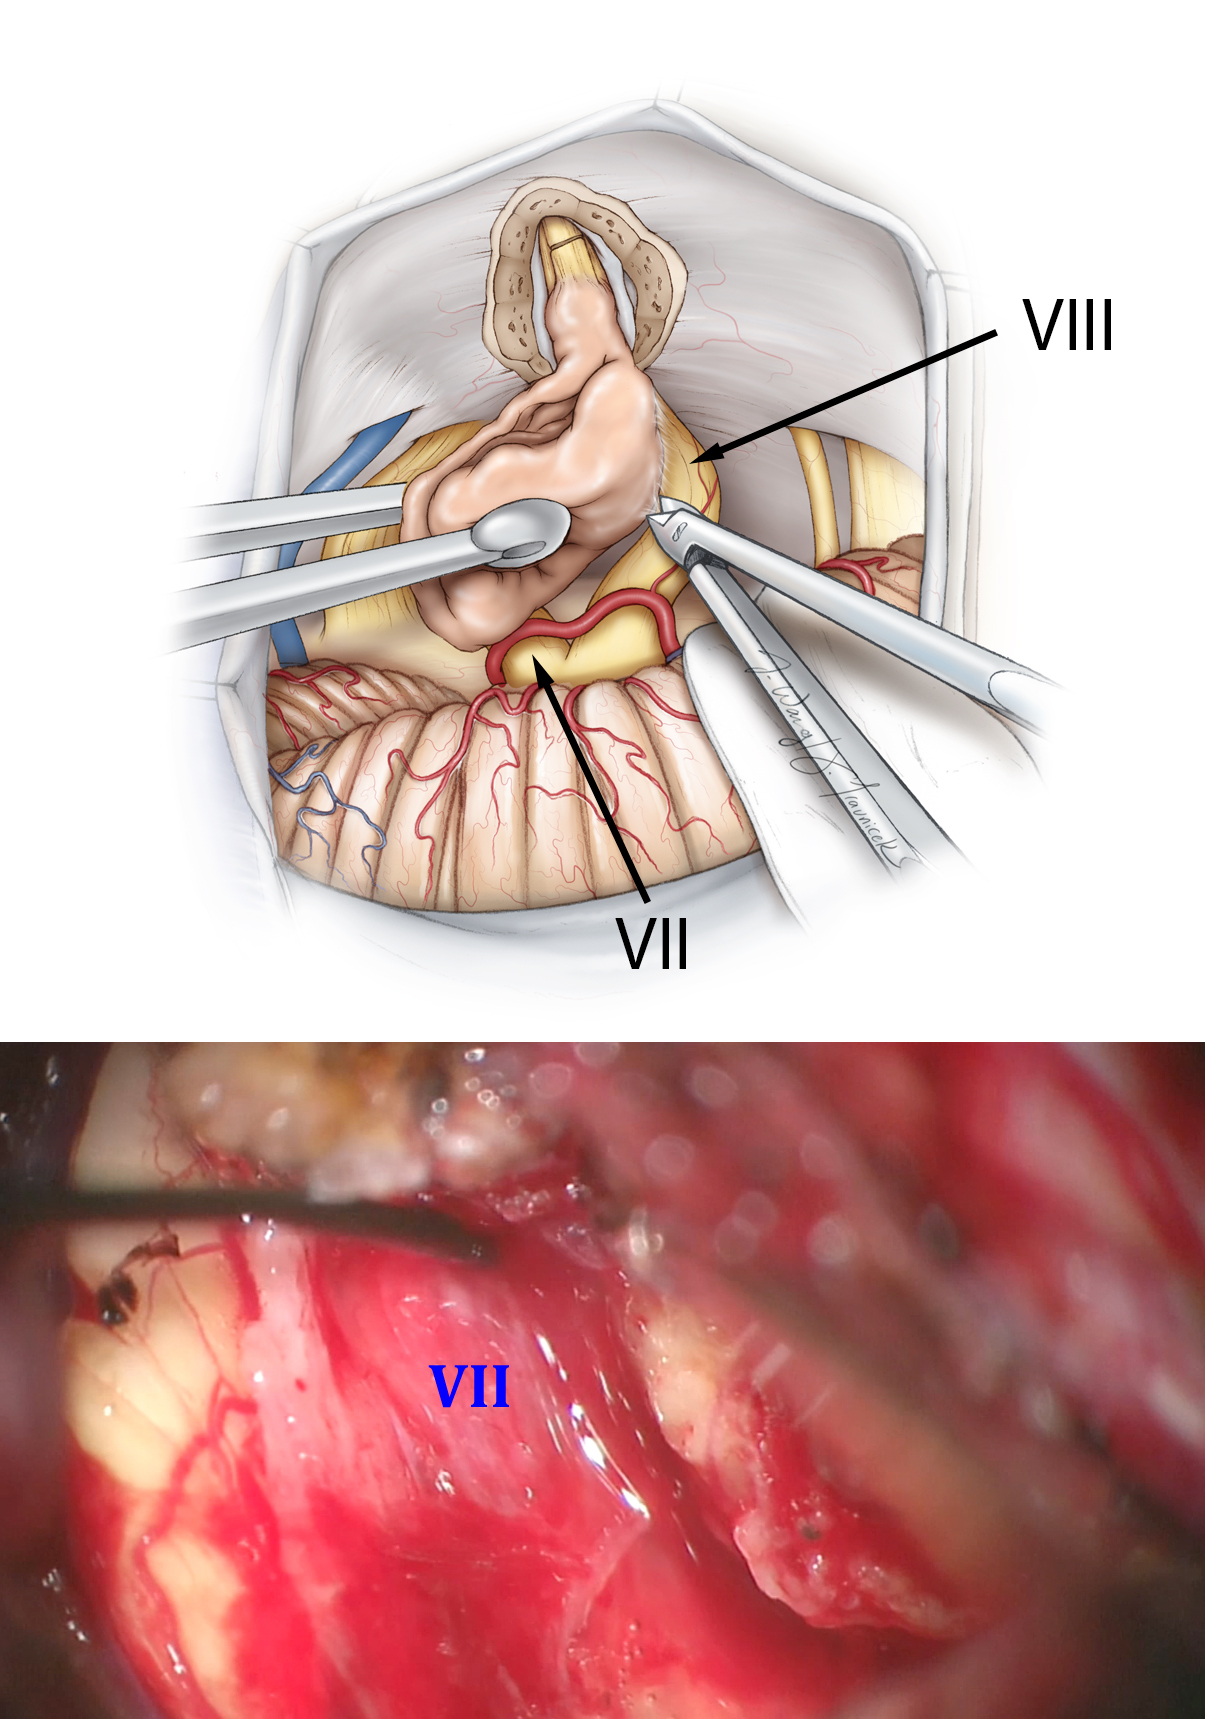 Figure 19: The capsule is dissected away from the nerves. Any injury to the facial nerve requires an increase in the stimulation intensity to map the nerve. This finding indicates the need to avoid further dissection of the nerve and plan a radical subtotal removal of the tumor. The labyrinthine artery is preserved if CN VIII has remained intact. The arachnoid membranes over CN VII are left intact (Modified and Redrawn from Tew, van Loveren, Keller*).